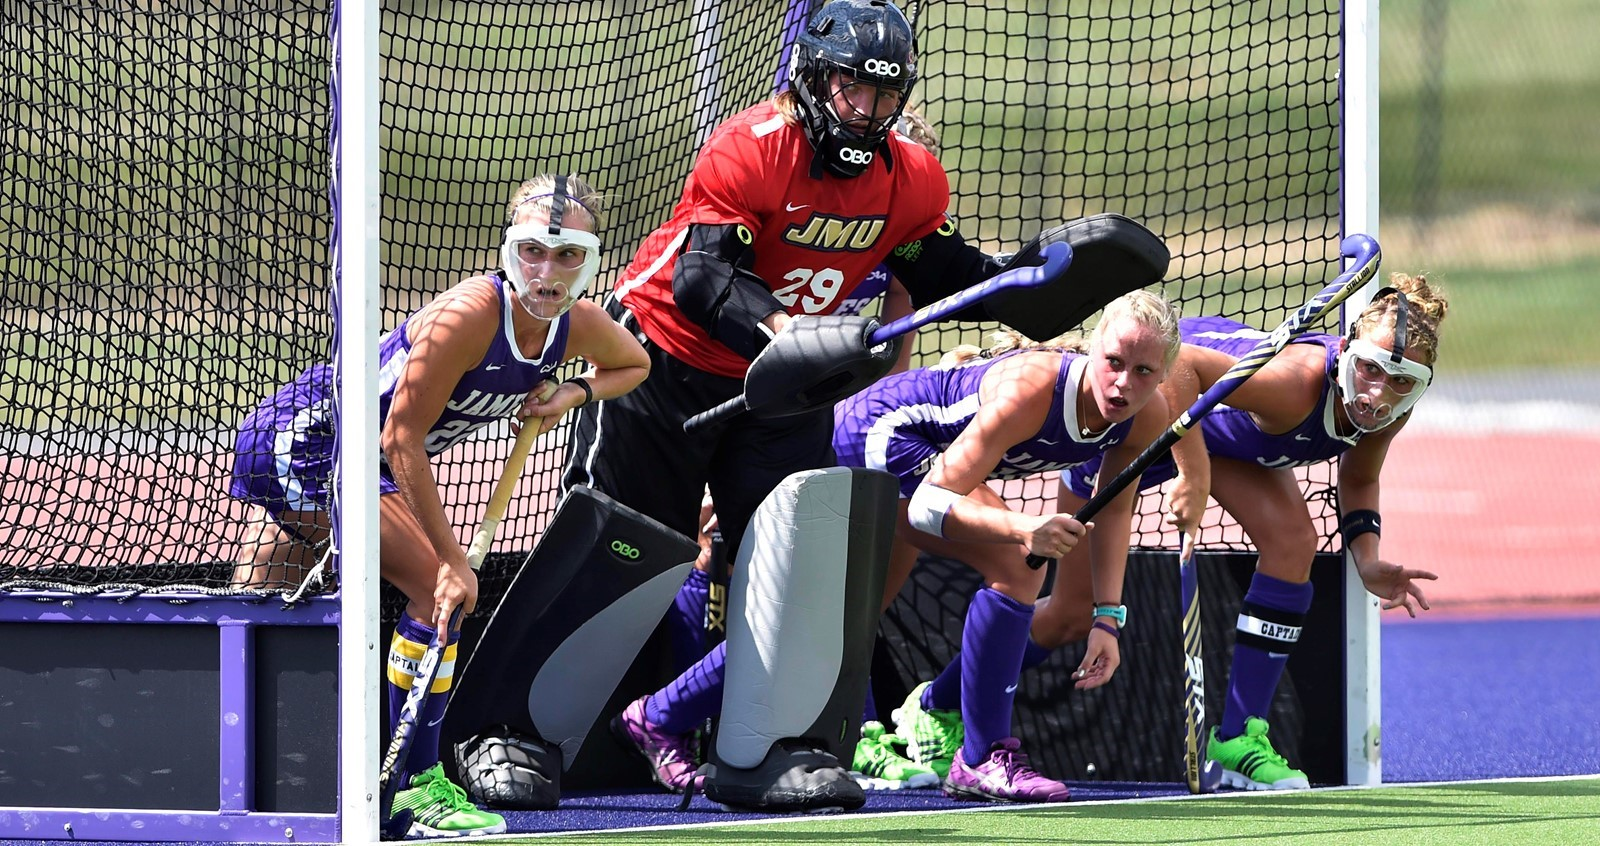 Field Hockey: JMU Moves Up to No. 18 Slot in NFHCA National Coaches Poll